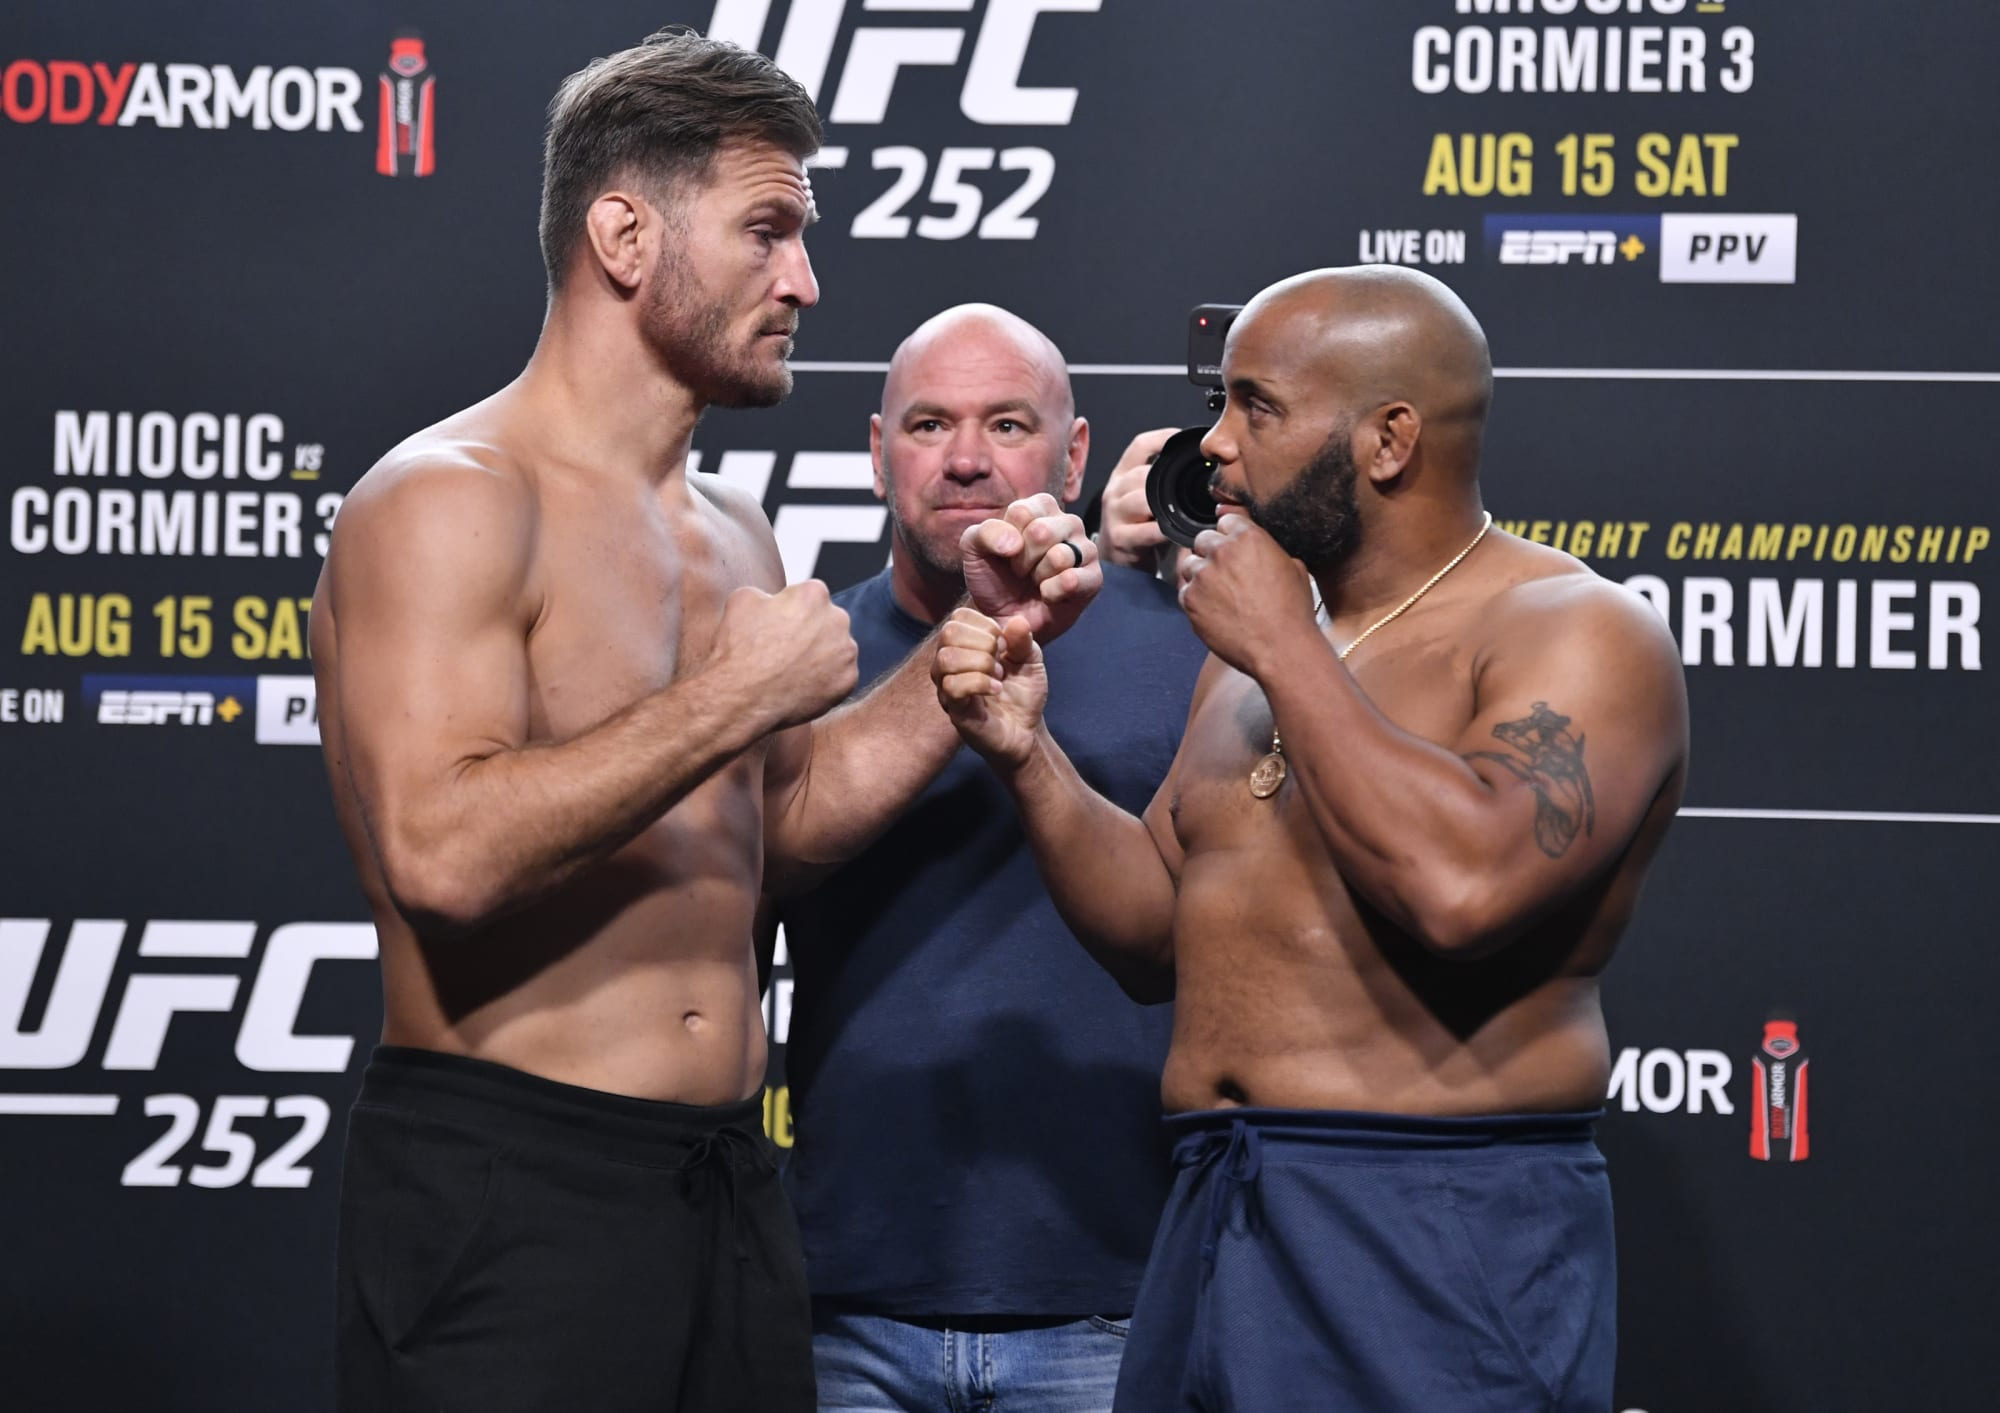 UFC 4 predicts winners of UFC 252: Miocic-Cormier, O'Malley-Vera